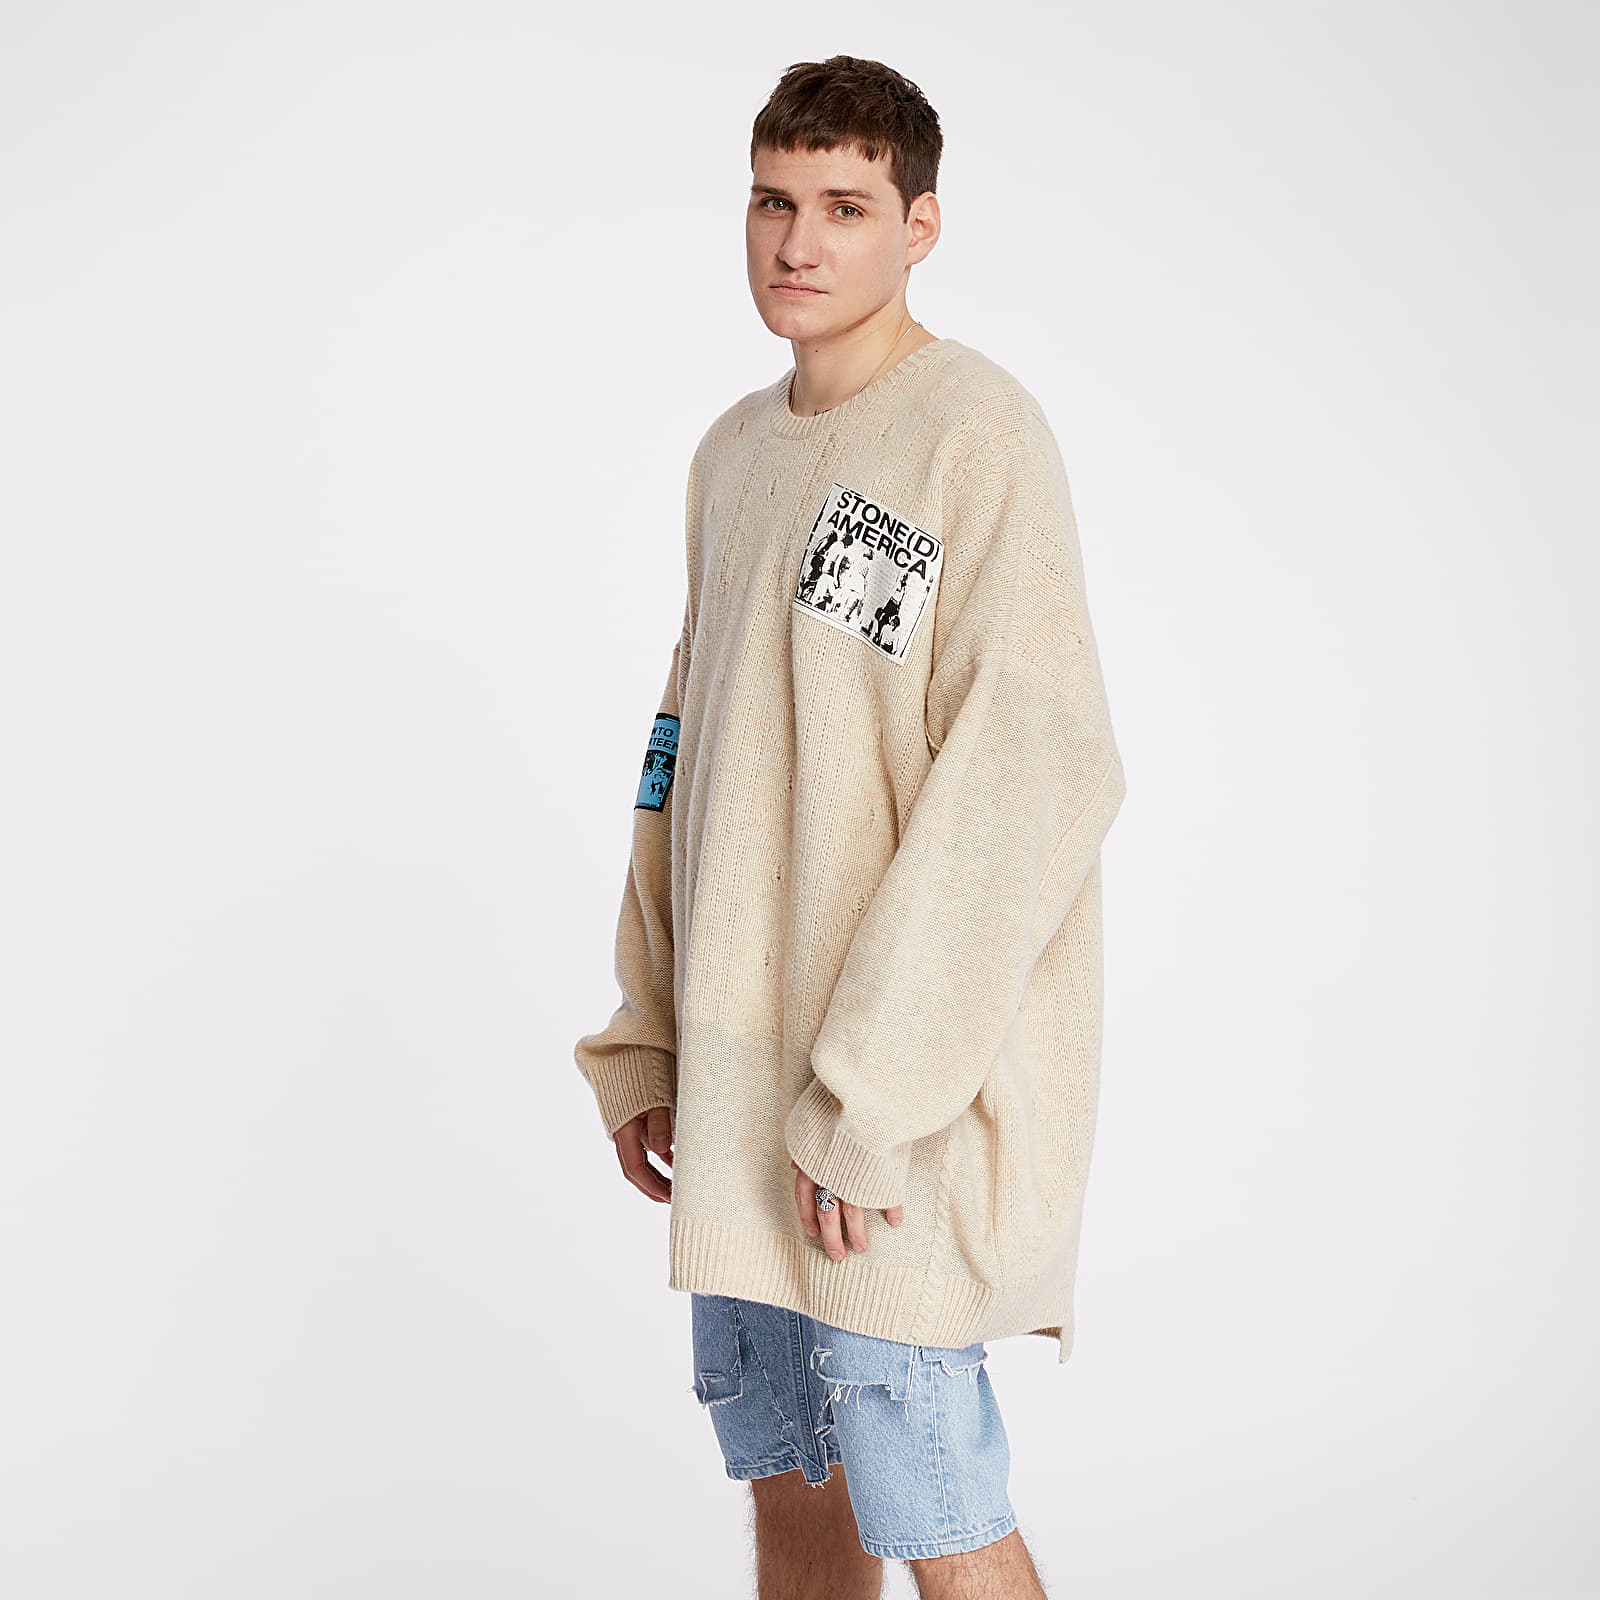 Sweatshirts RAF SIMONS Oversized Roundneck Sweater With Patches